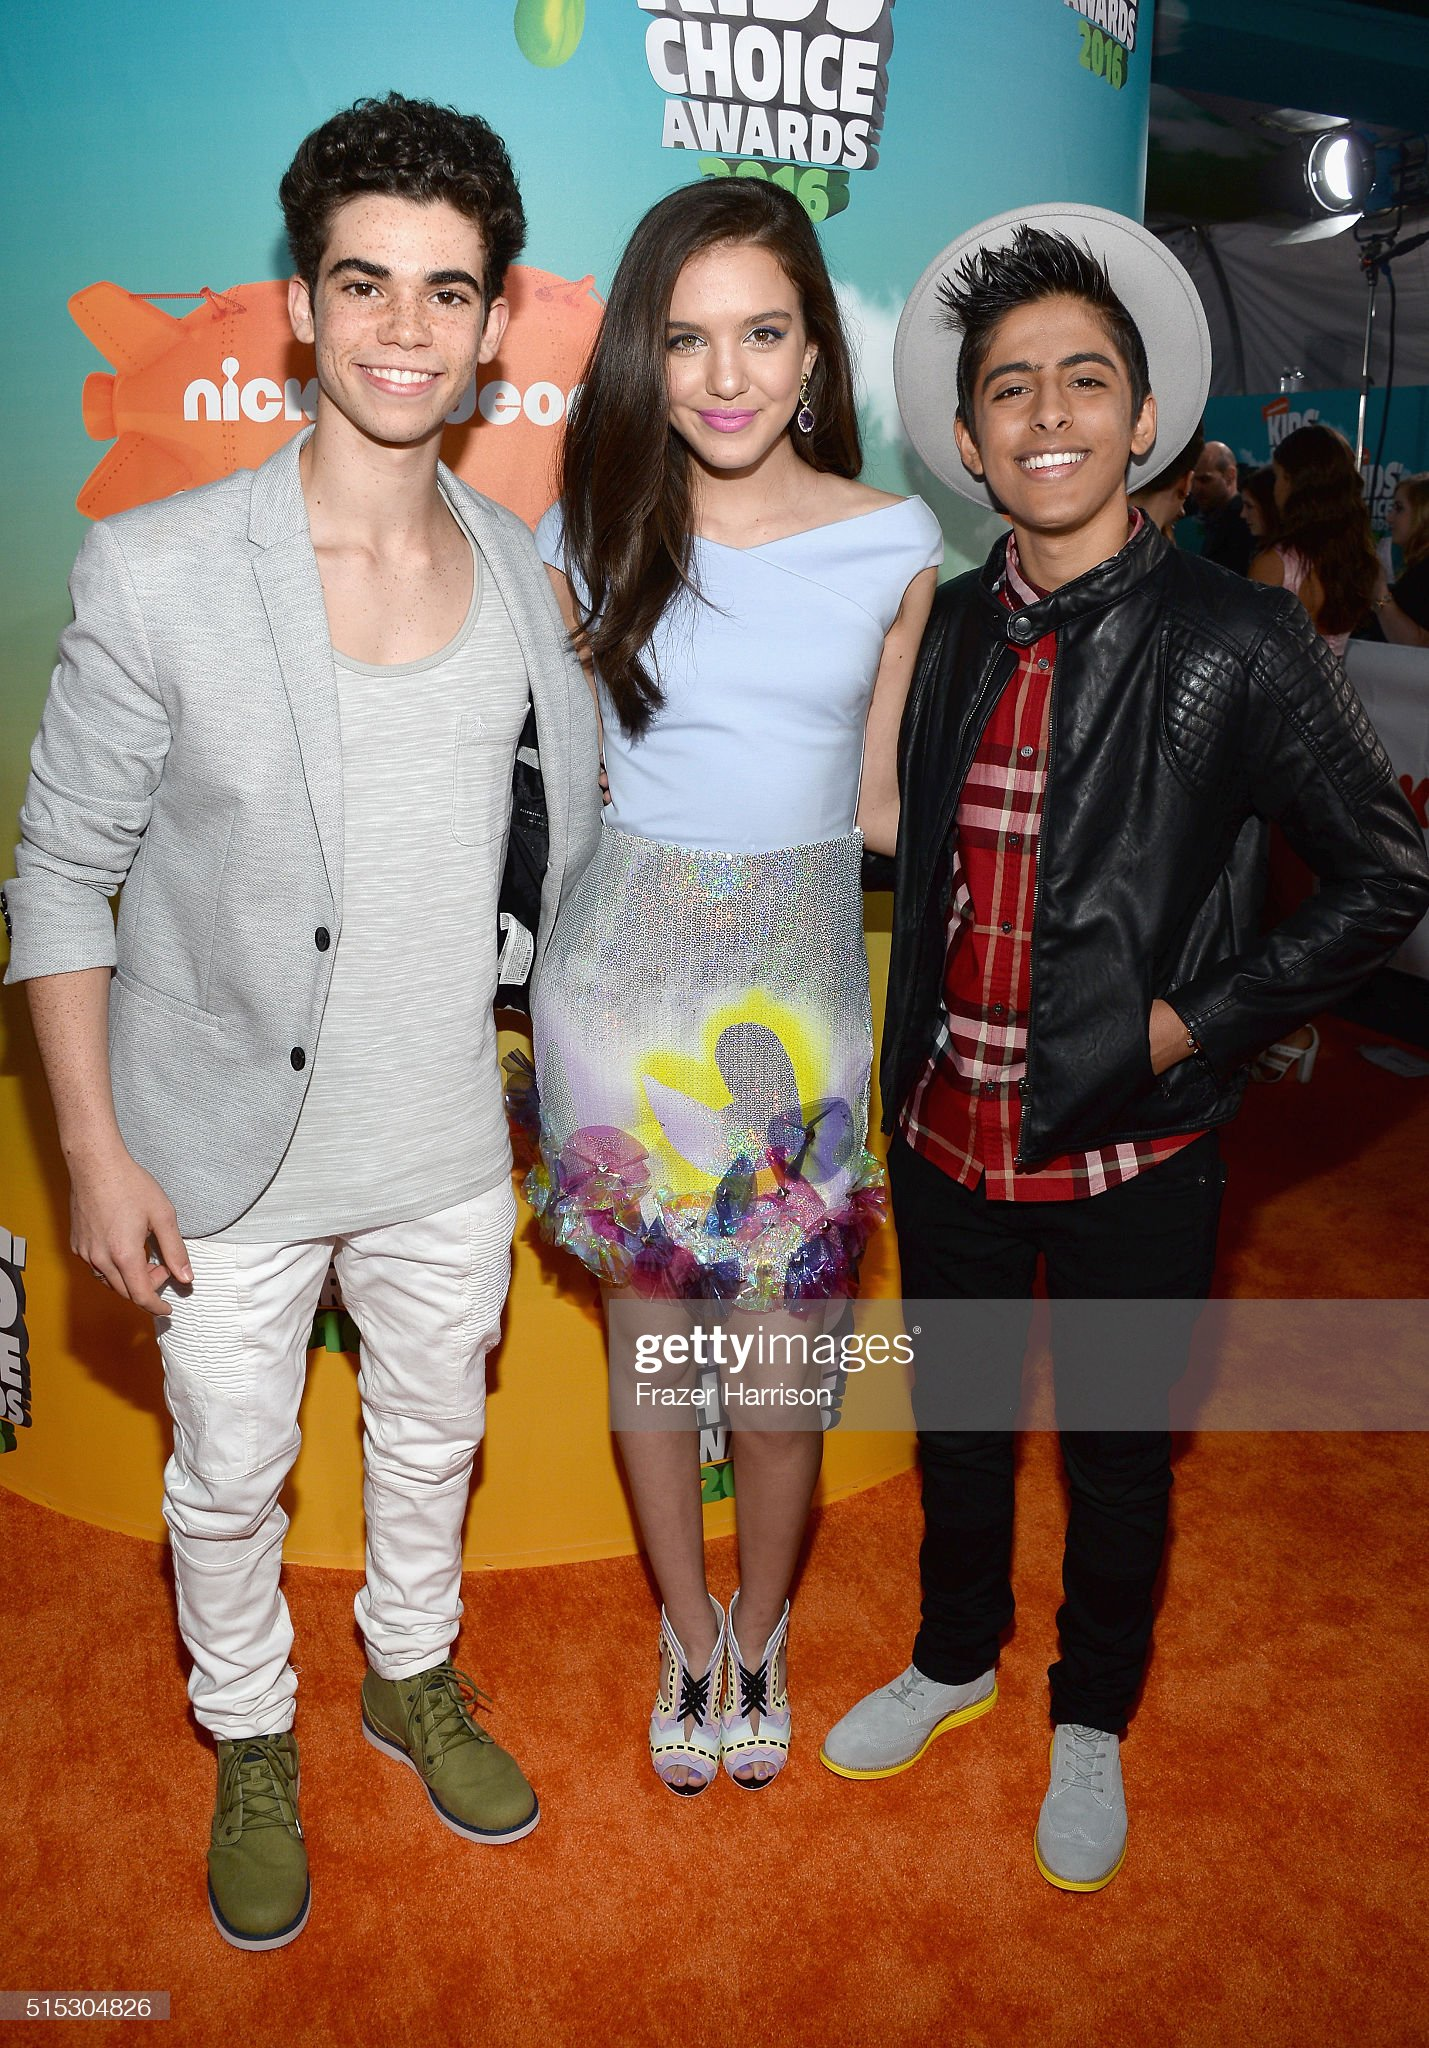 ¿Cuánto mide Karan Brar? - Altura - Real height Actors-cameron-boyce-lilimar-and-karan-brar-attends-nickelodeons-2016-picture-id515304826?s=2048x2048